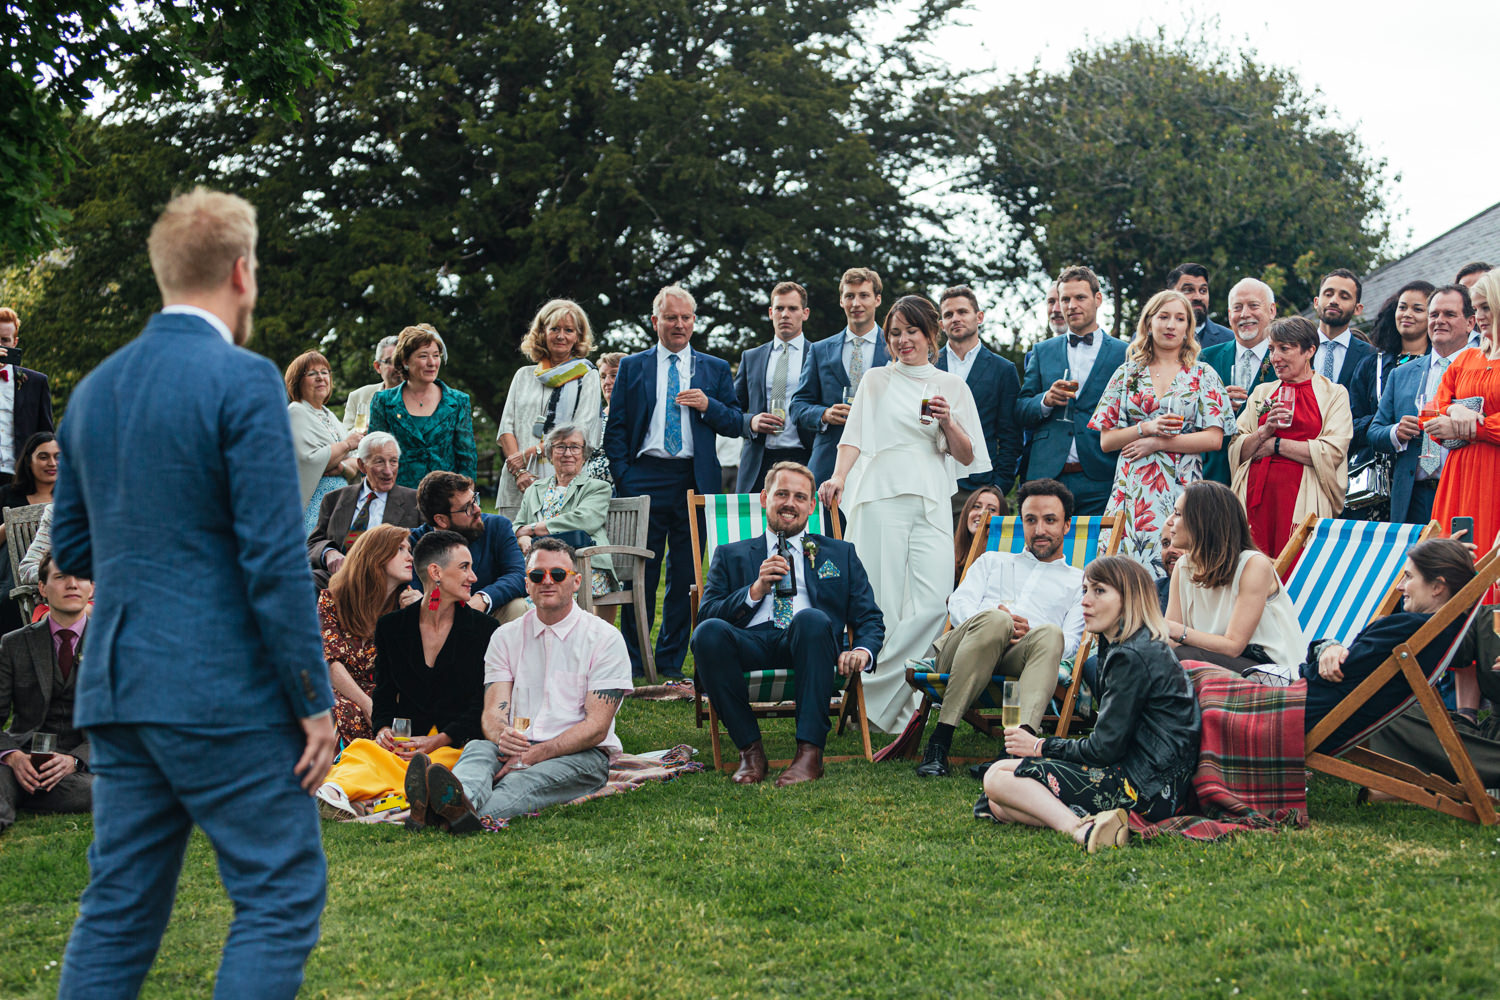 wedding guests sat on a deck chairs, grass, guests sat on grass, wedding speeches, champagne, wedding guests, sharpham house, sharpham gardens, sharpham gardens wedding photography, colourful clothing, deck chair, drinks, outdoor wedding reception